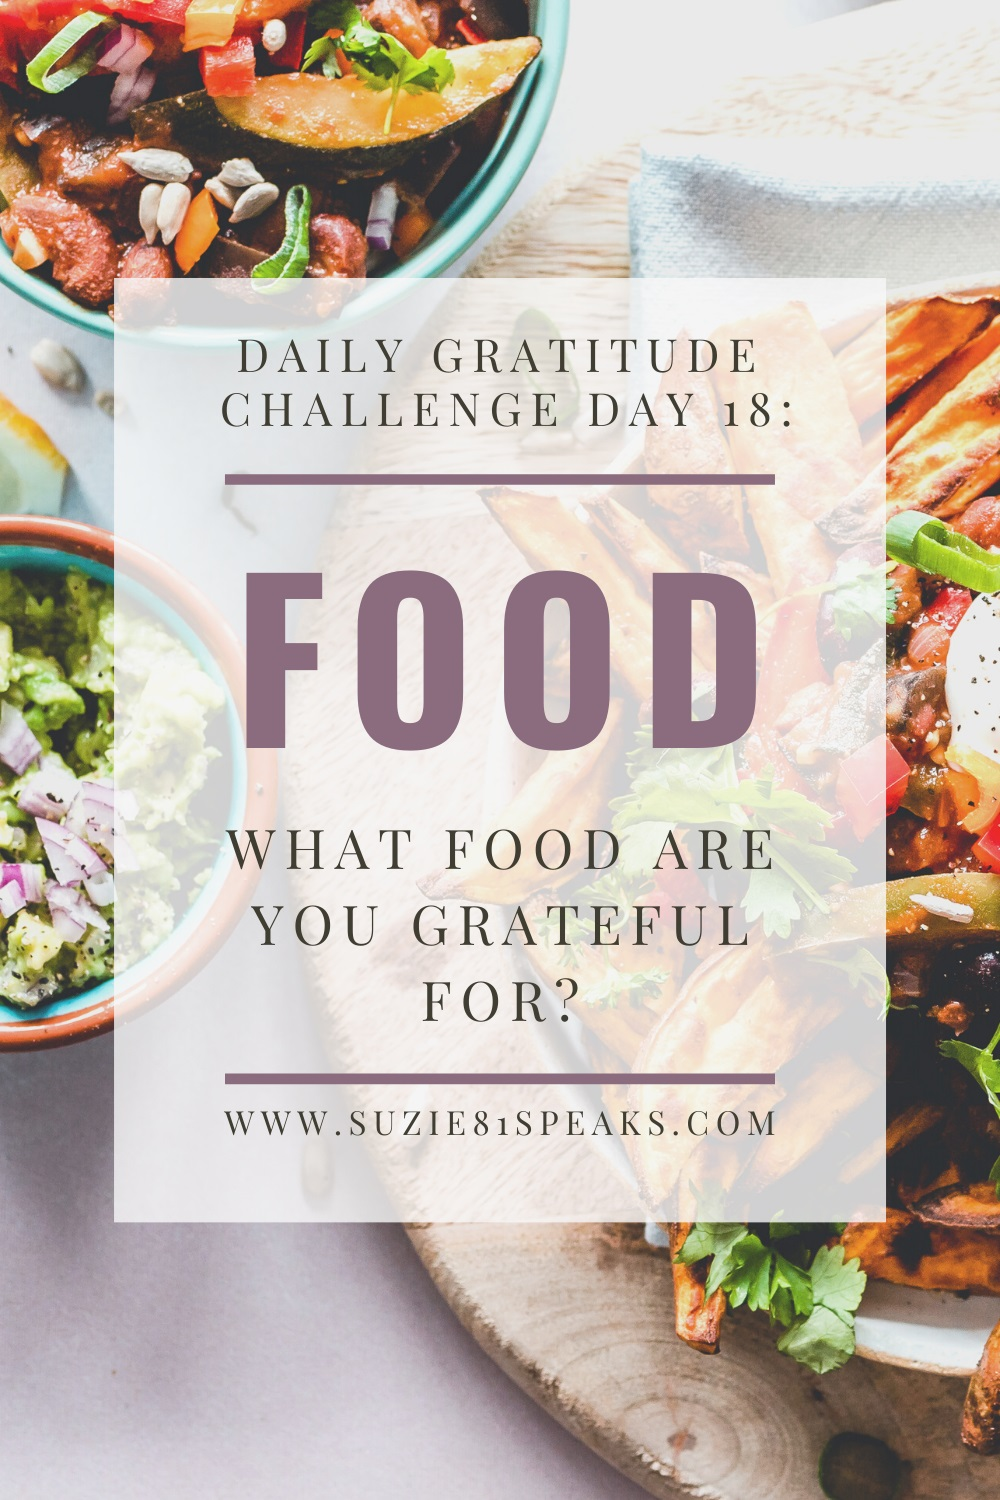 Daily Gratitude Challenge Day 18: Food